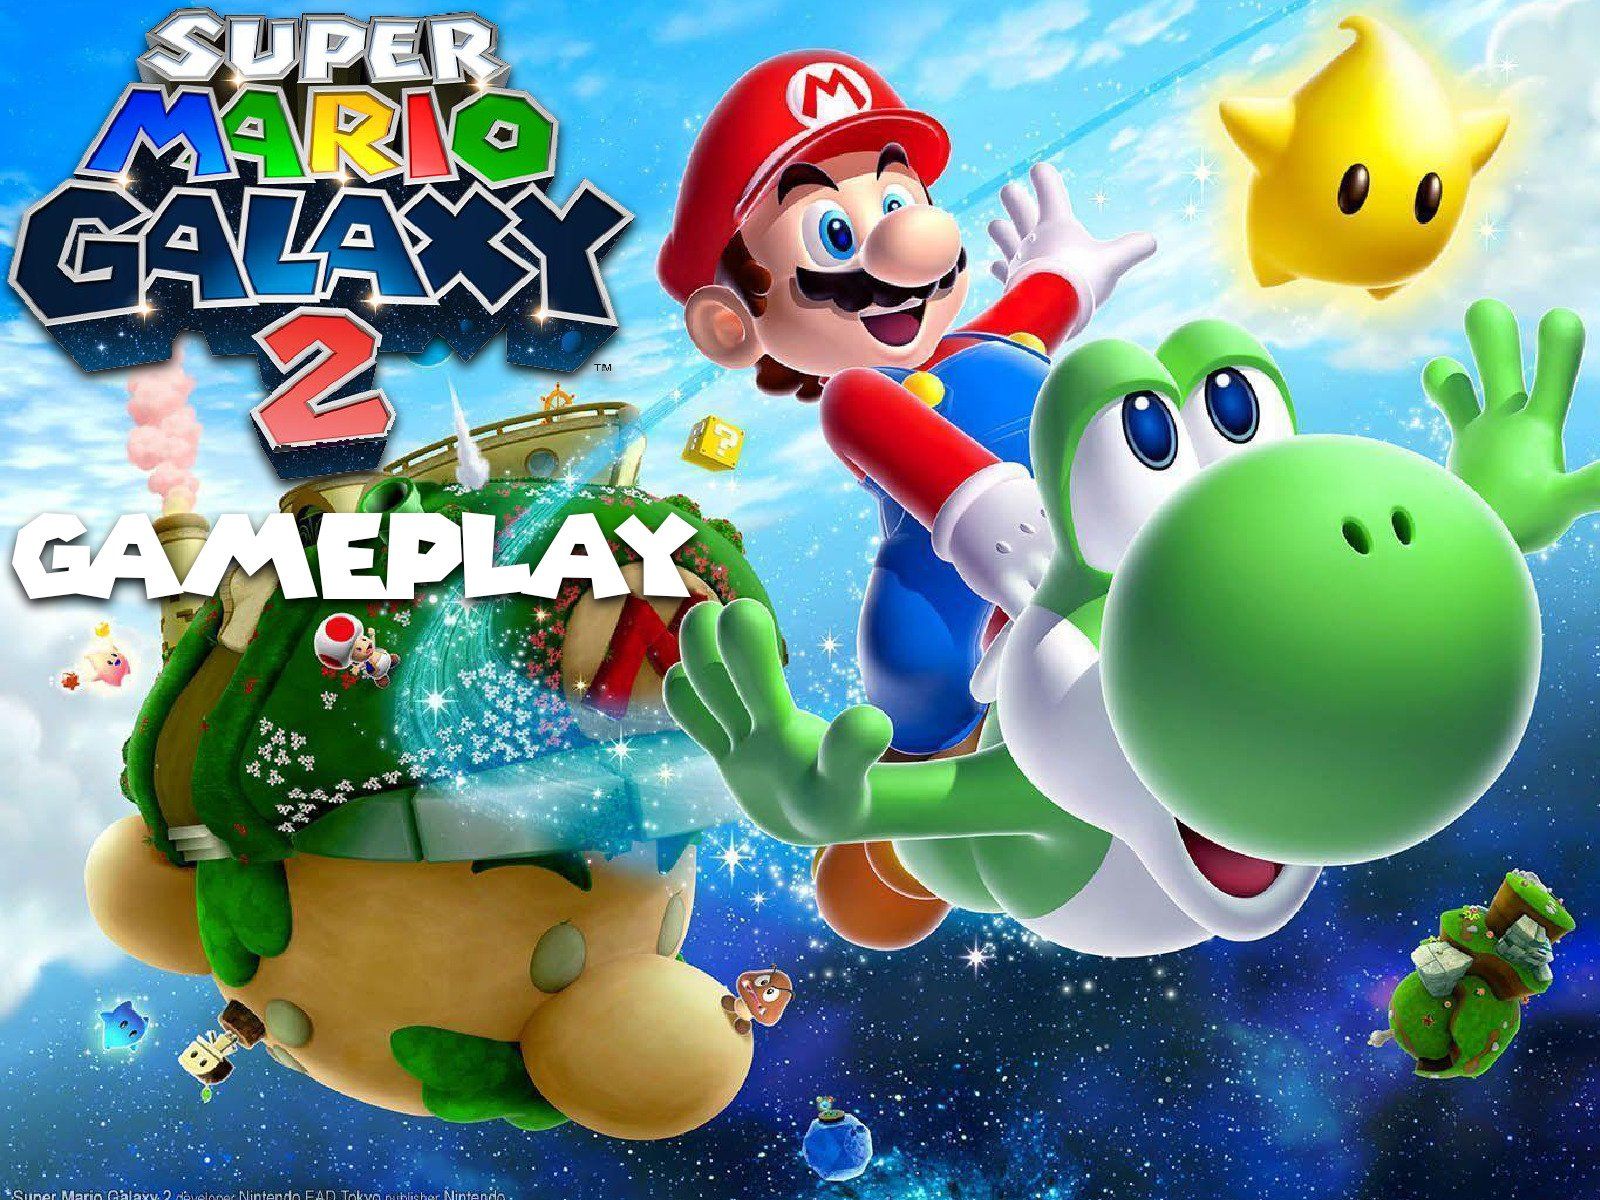 Clip: Super Mario Galaxy 2 Gameplay